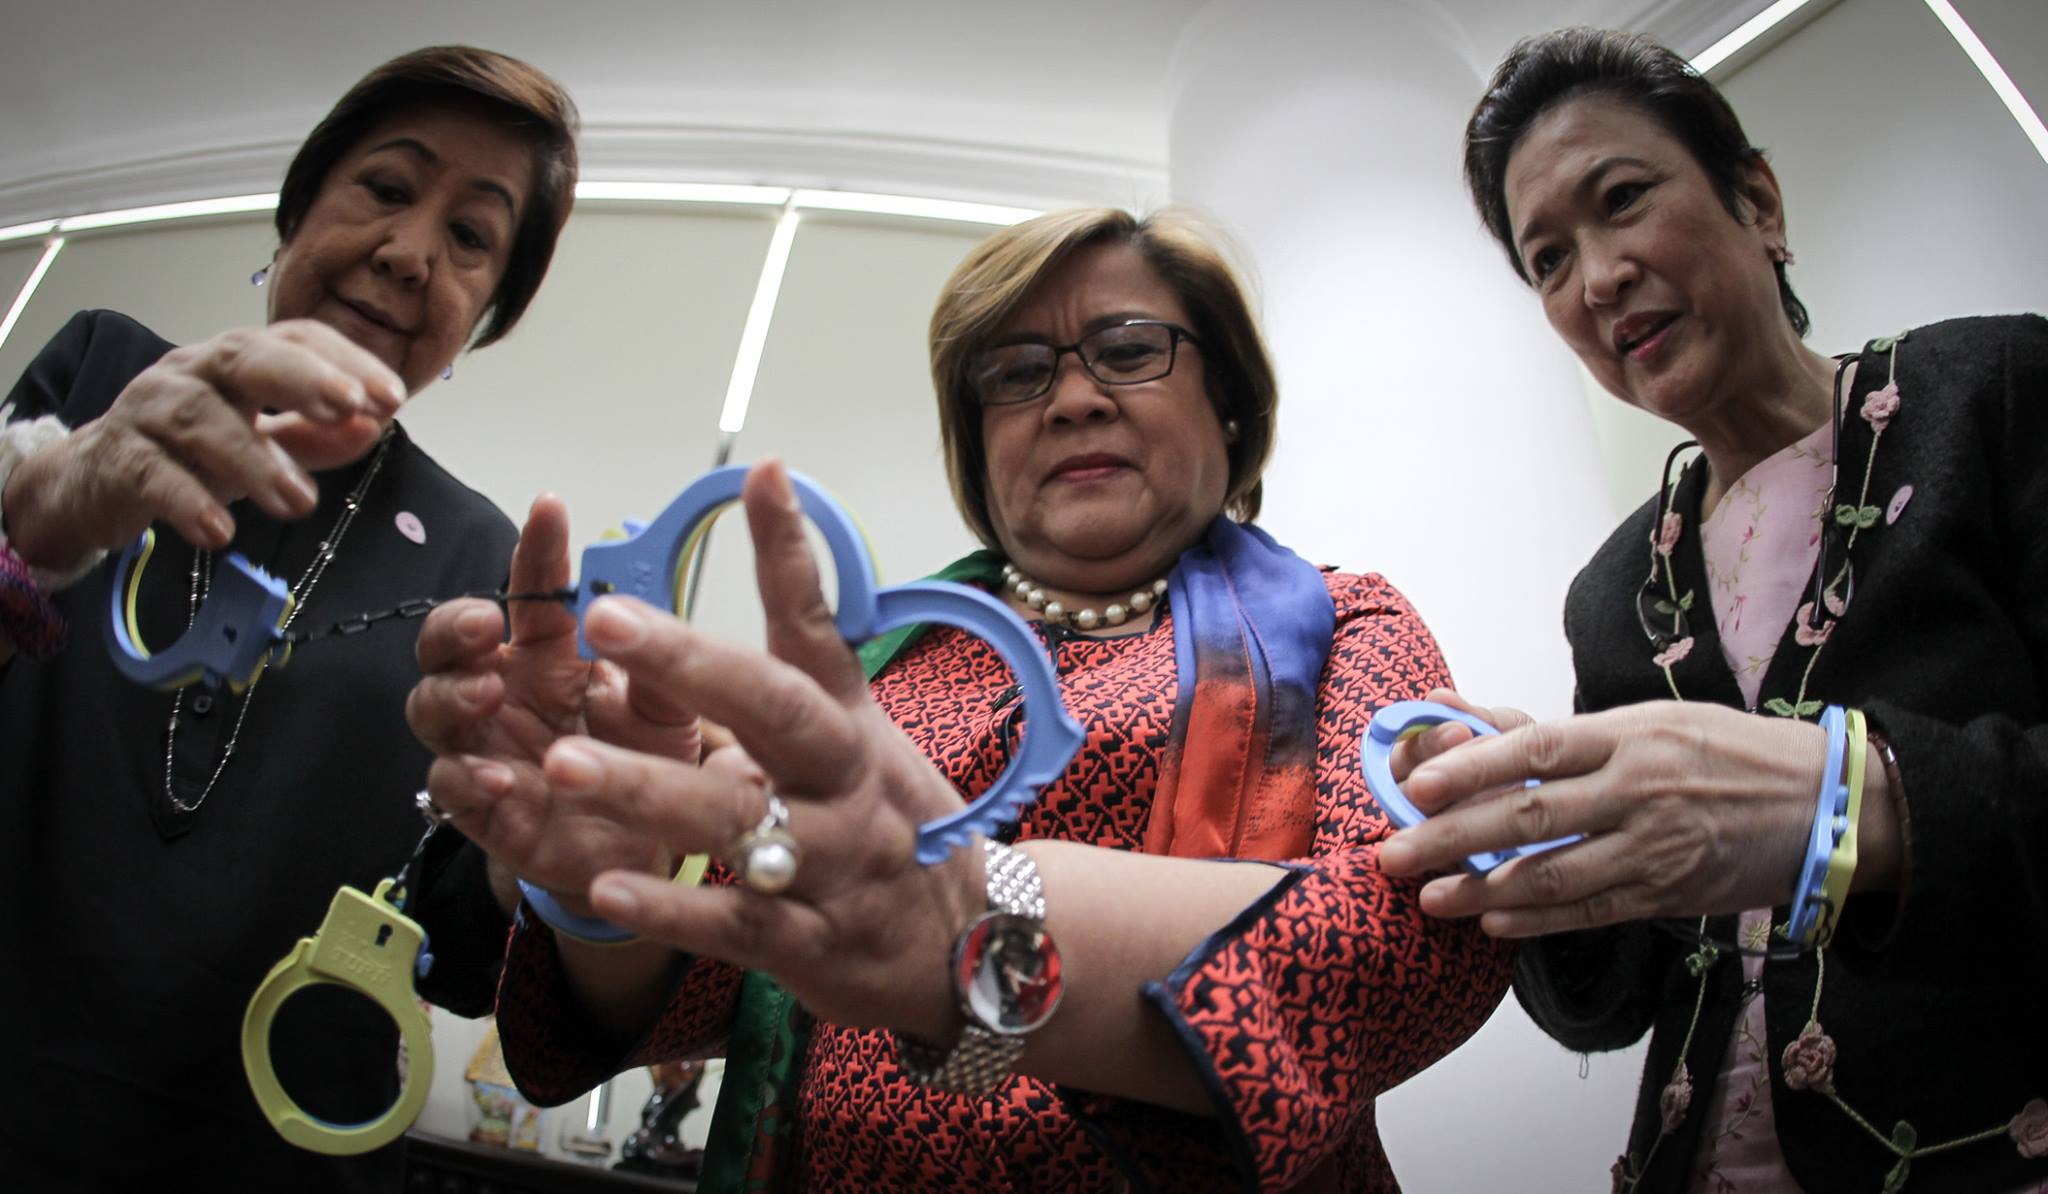 This statement was issued the same day three drug-related charges were filed against De Lima (center) in the Muntinlupa Regional Trial Court. (PRIB Photo by Joseph Vidal/Senate of the Philippines on Facebook)